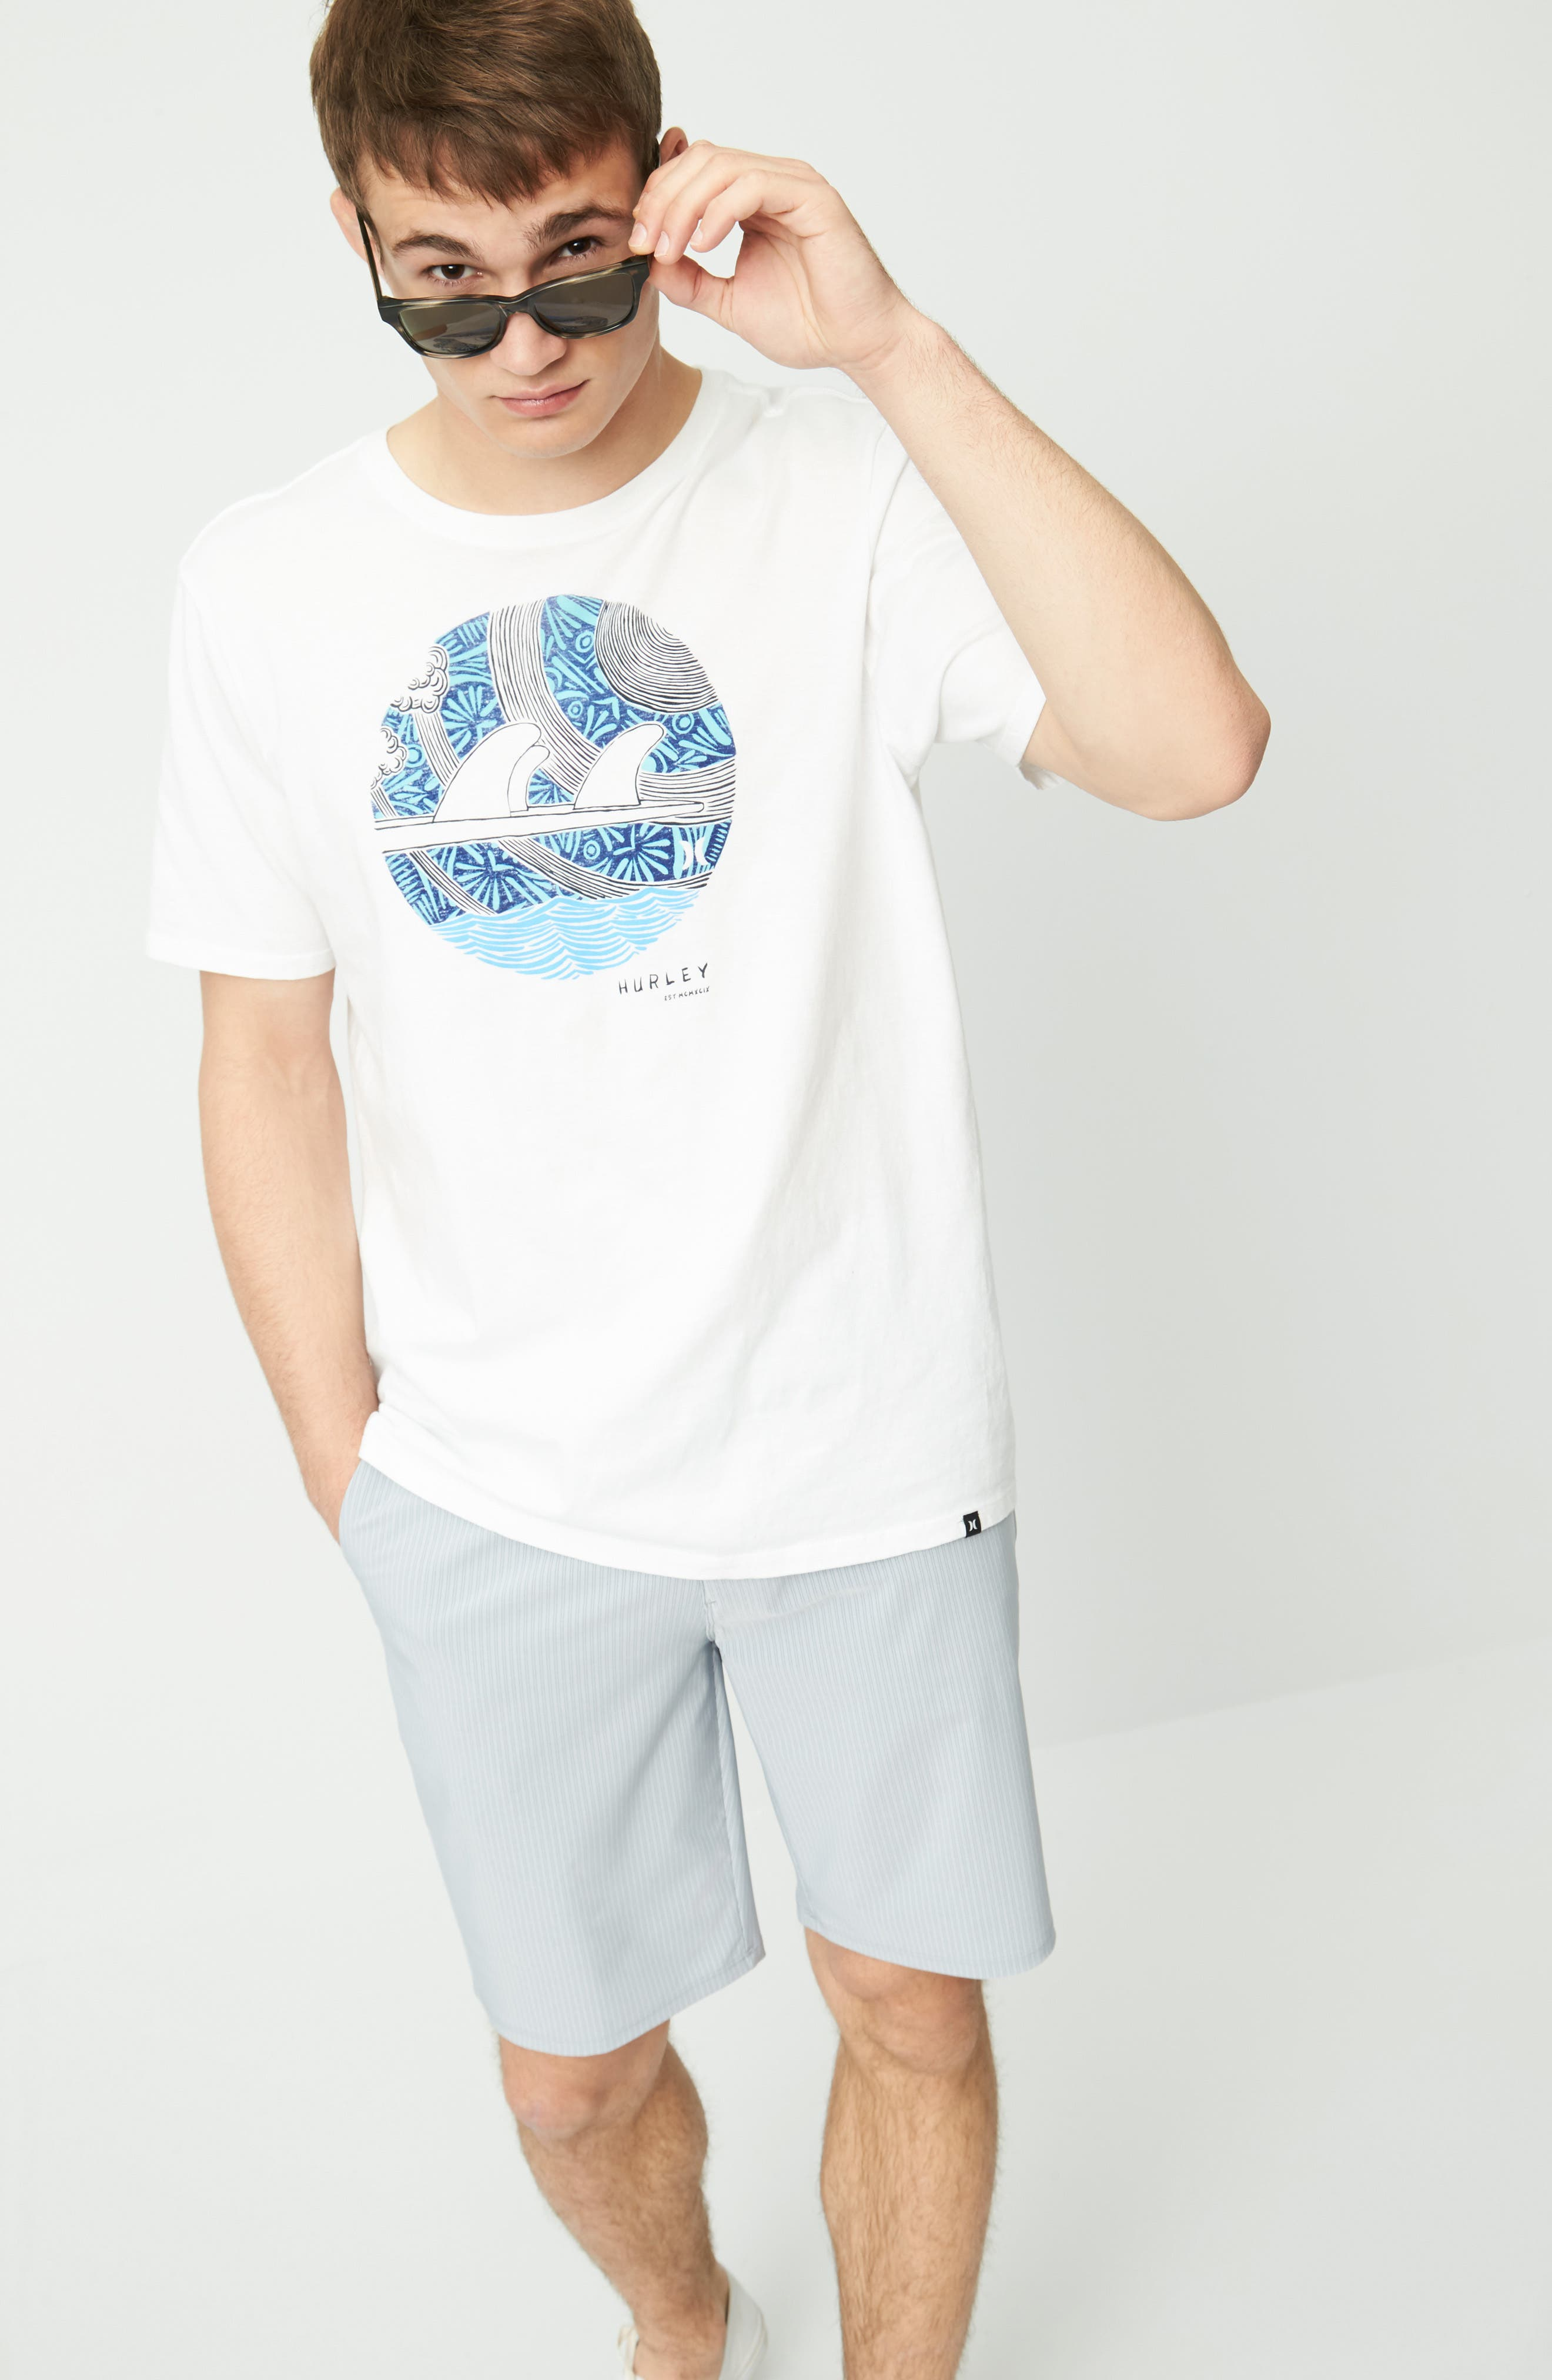 Hurley T-Shirt & Shorts Outfit with Accessories